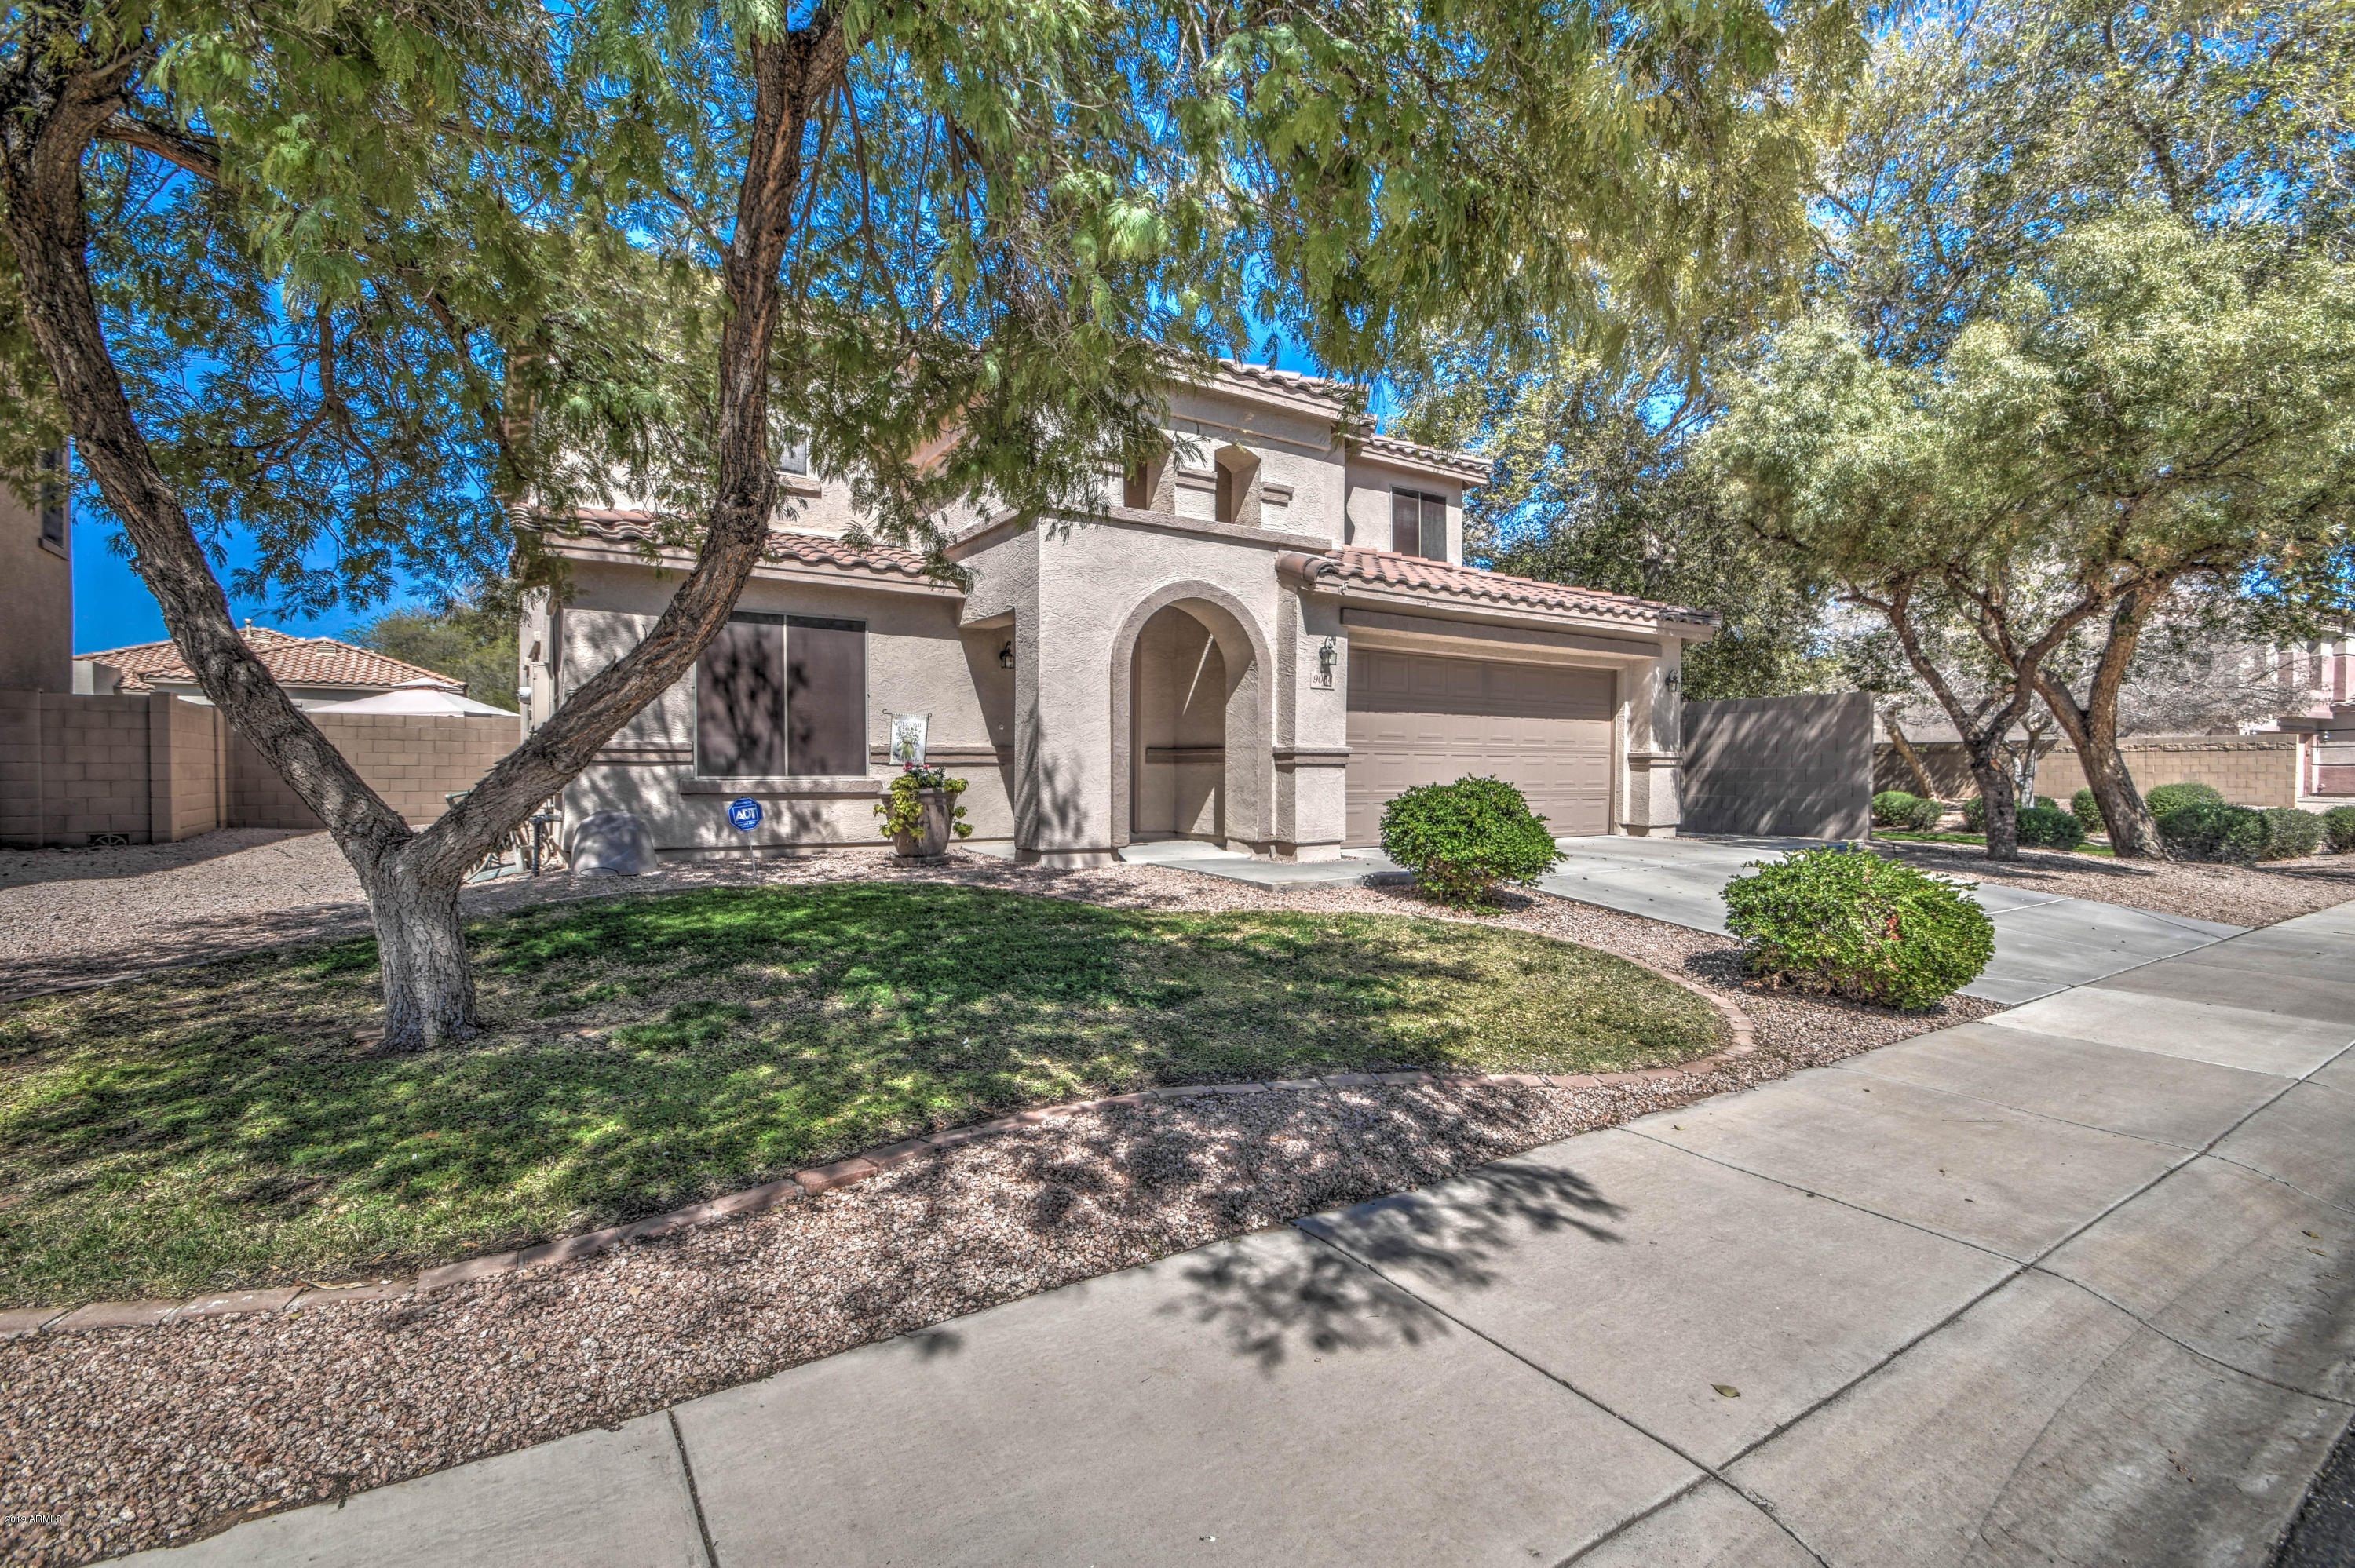 Photo of 9054 E PLANA Avenue, Mesa, AZ 85212